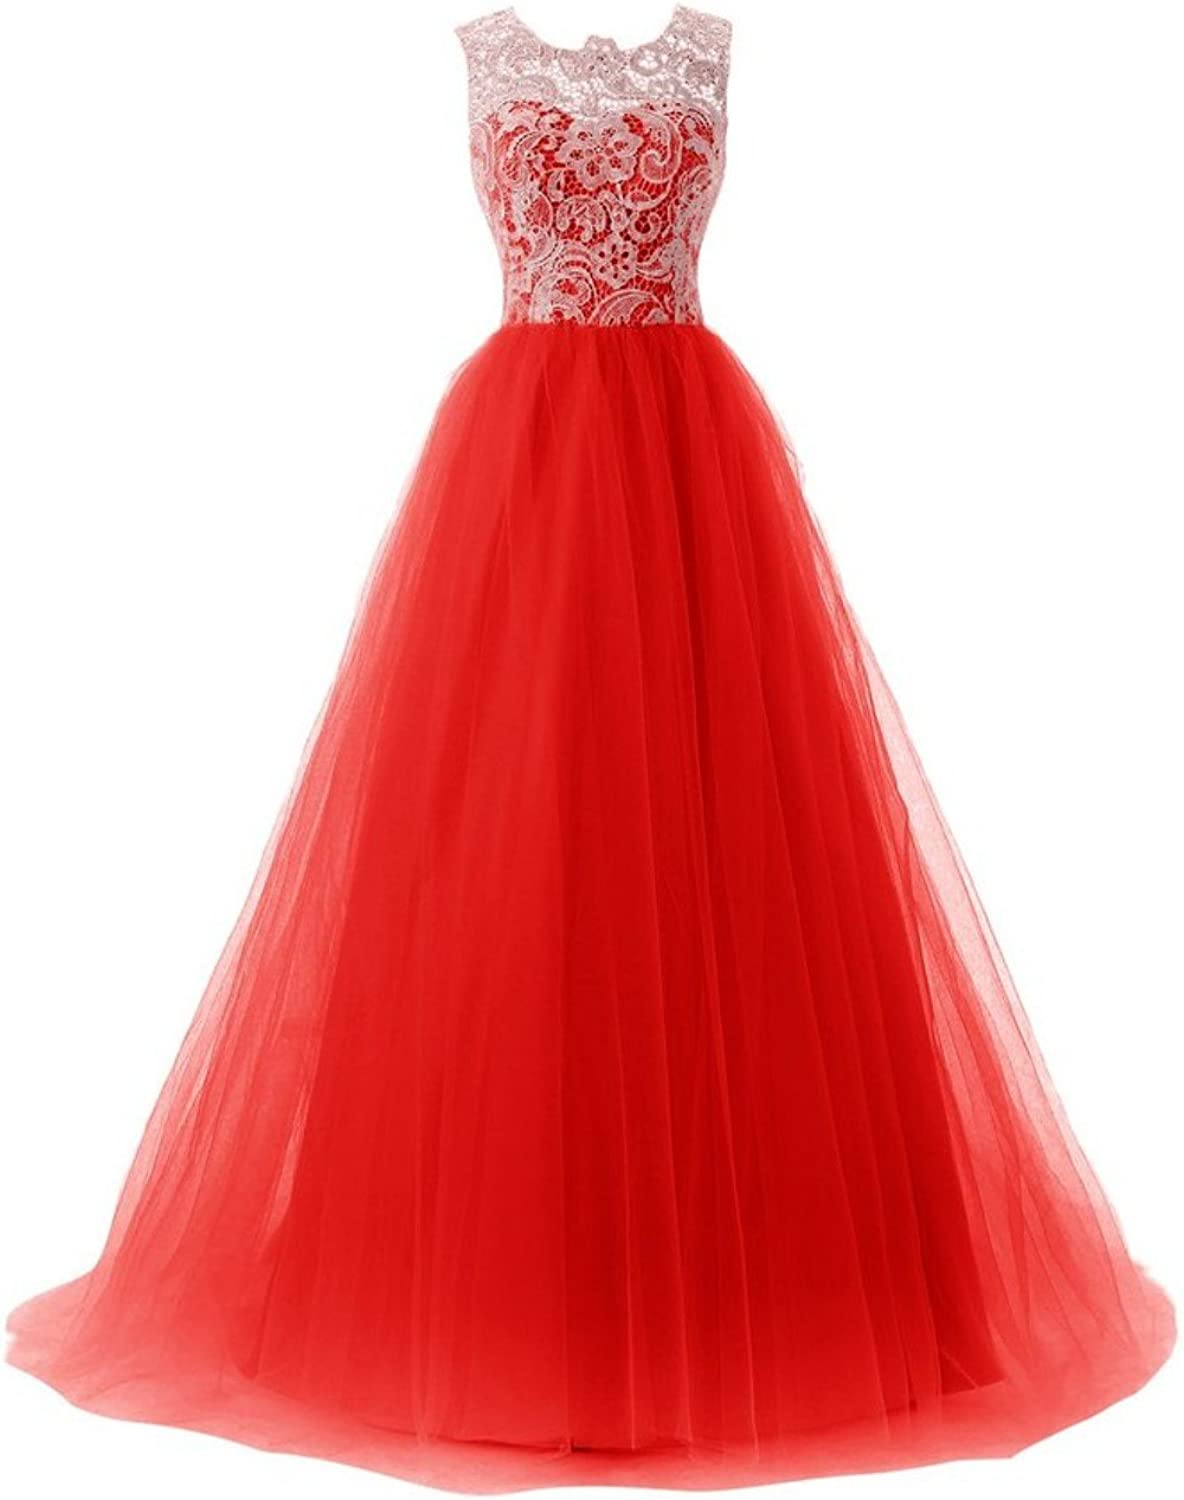 Anna's Bridal Women's Tulle Lace Prom Dresses Ball Gown Quinceanera Dress